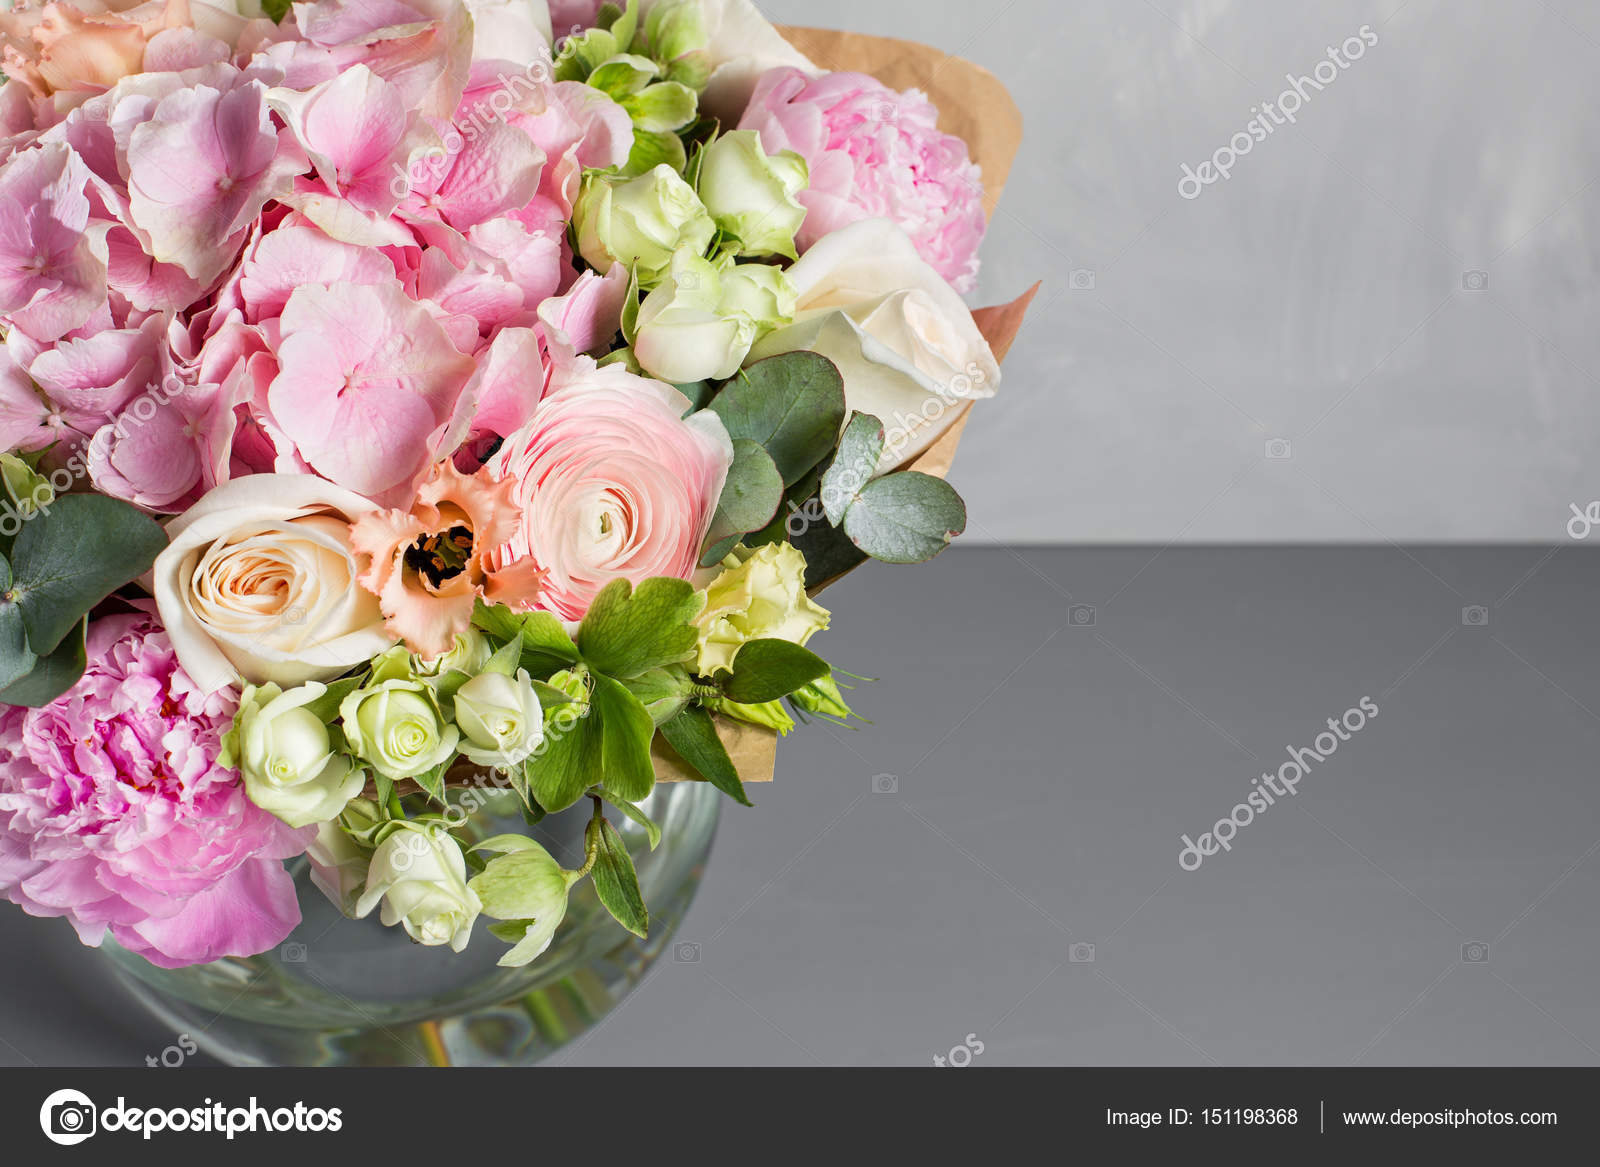 Still Life With A Bouquet Of Flowers The Florist Put Together A